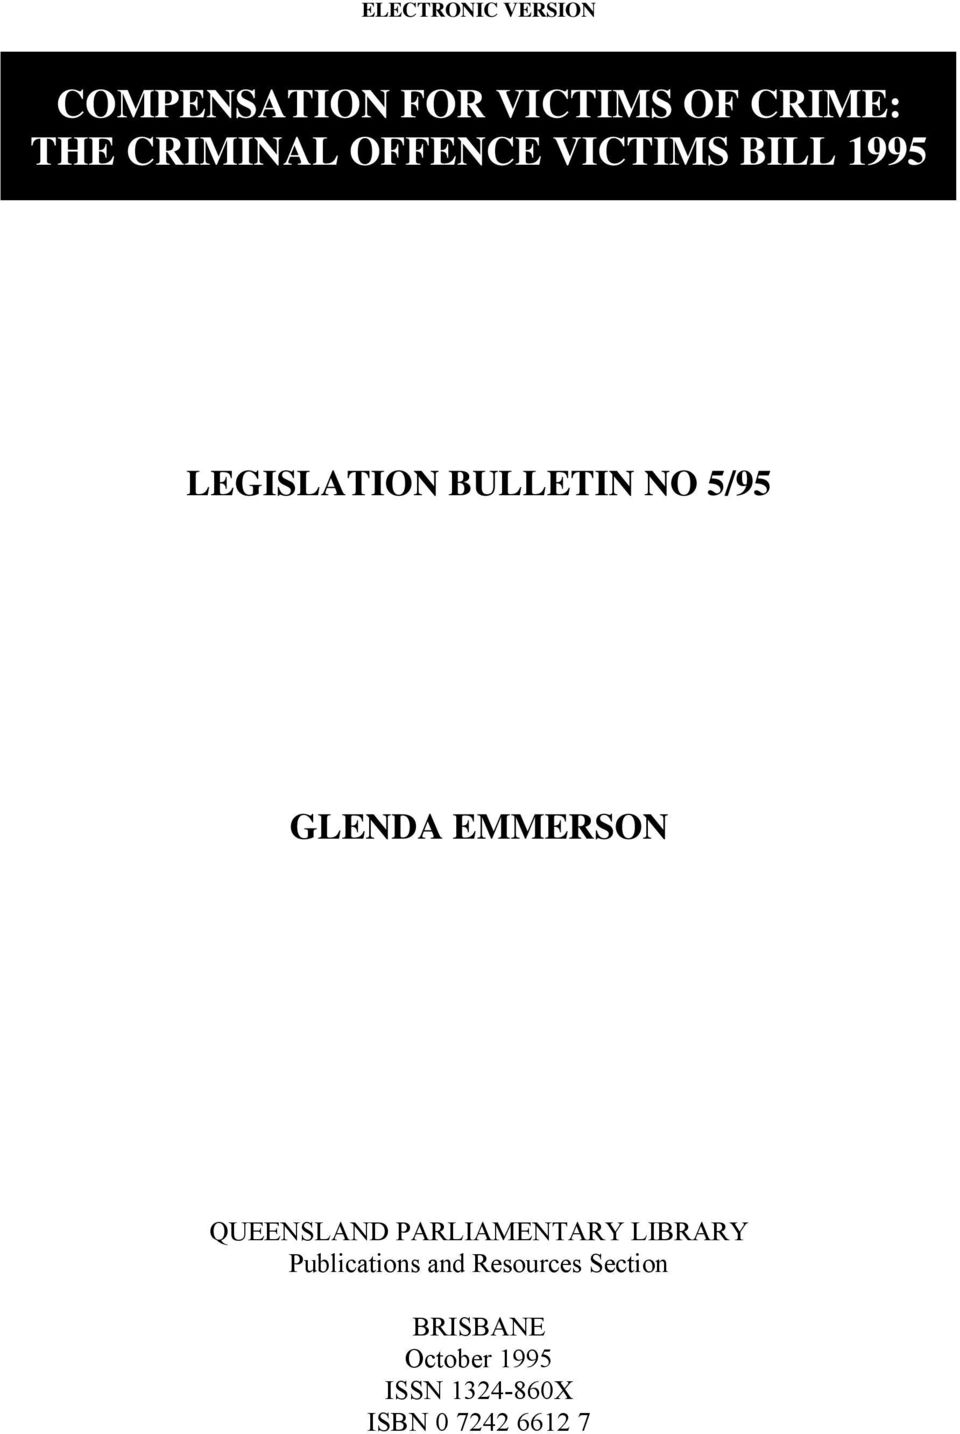 GLENDA EMMERSON QUEENSLAND PARLIAMENTARY LIBRARY Publications and